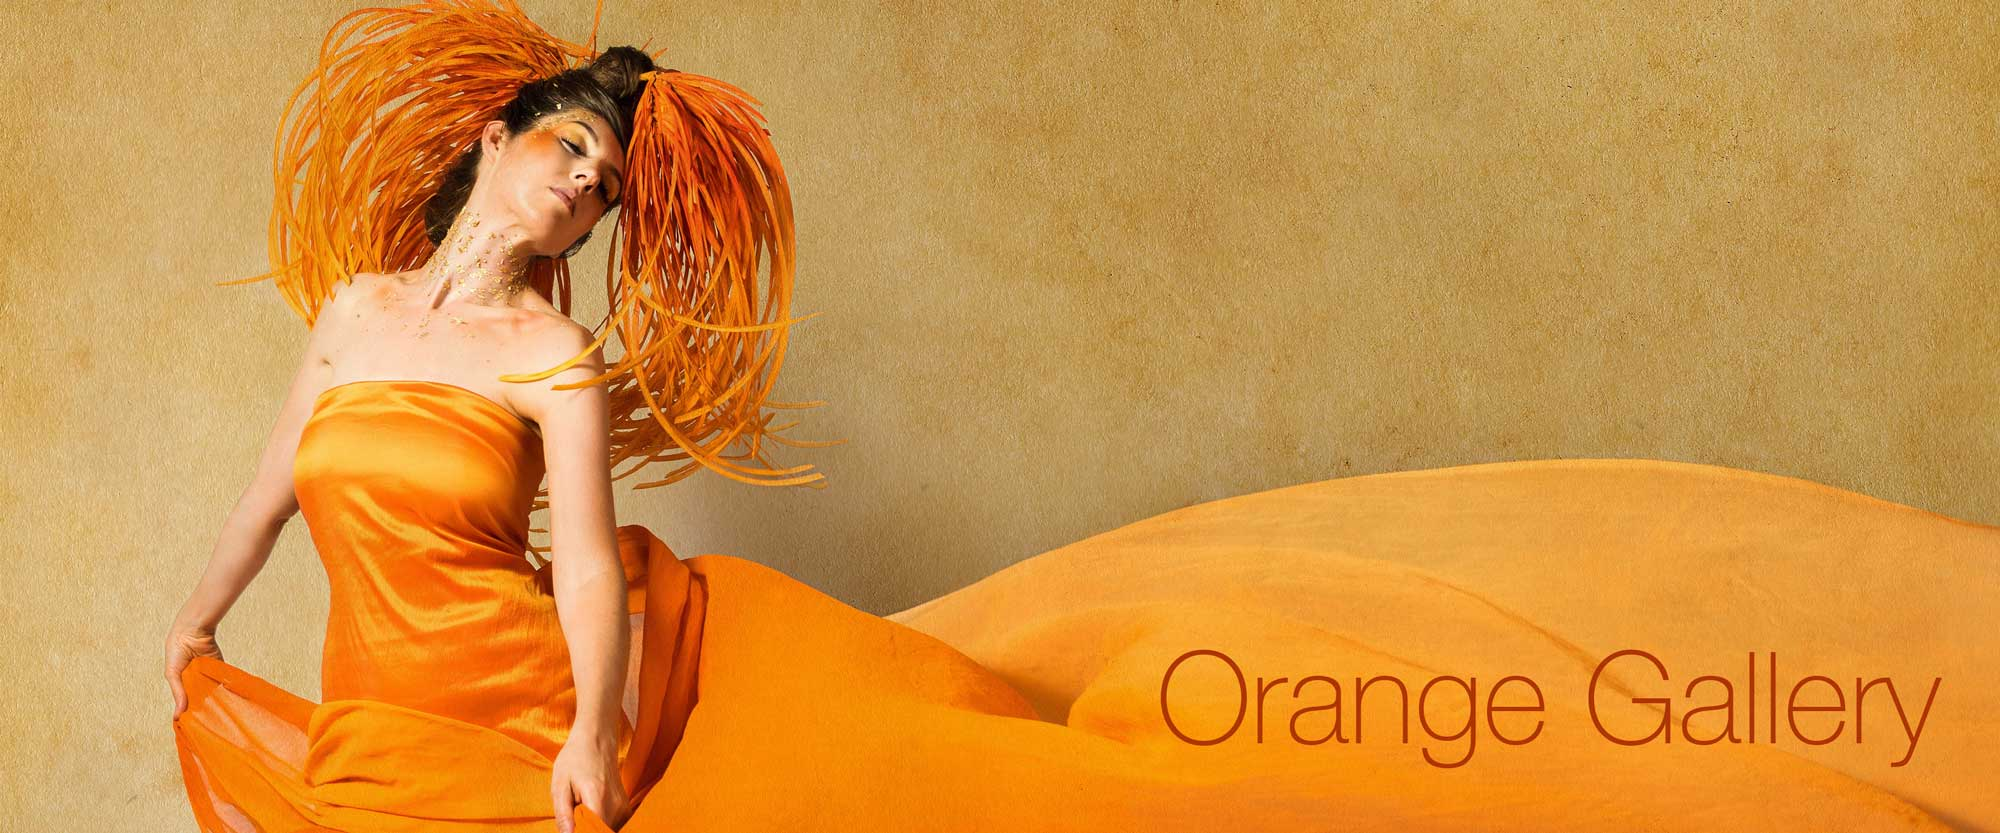 Laüra Hollick's Orange Gallery